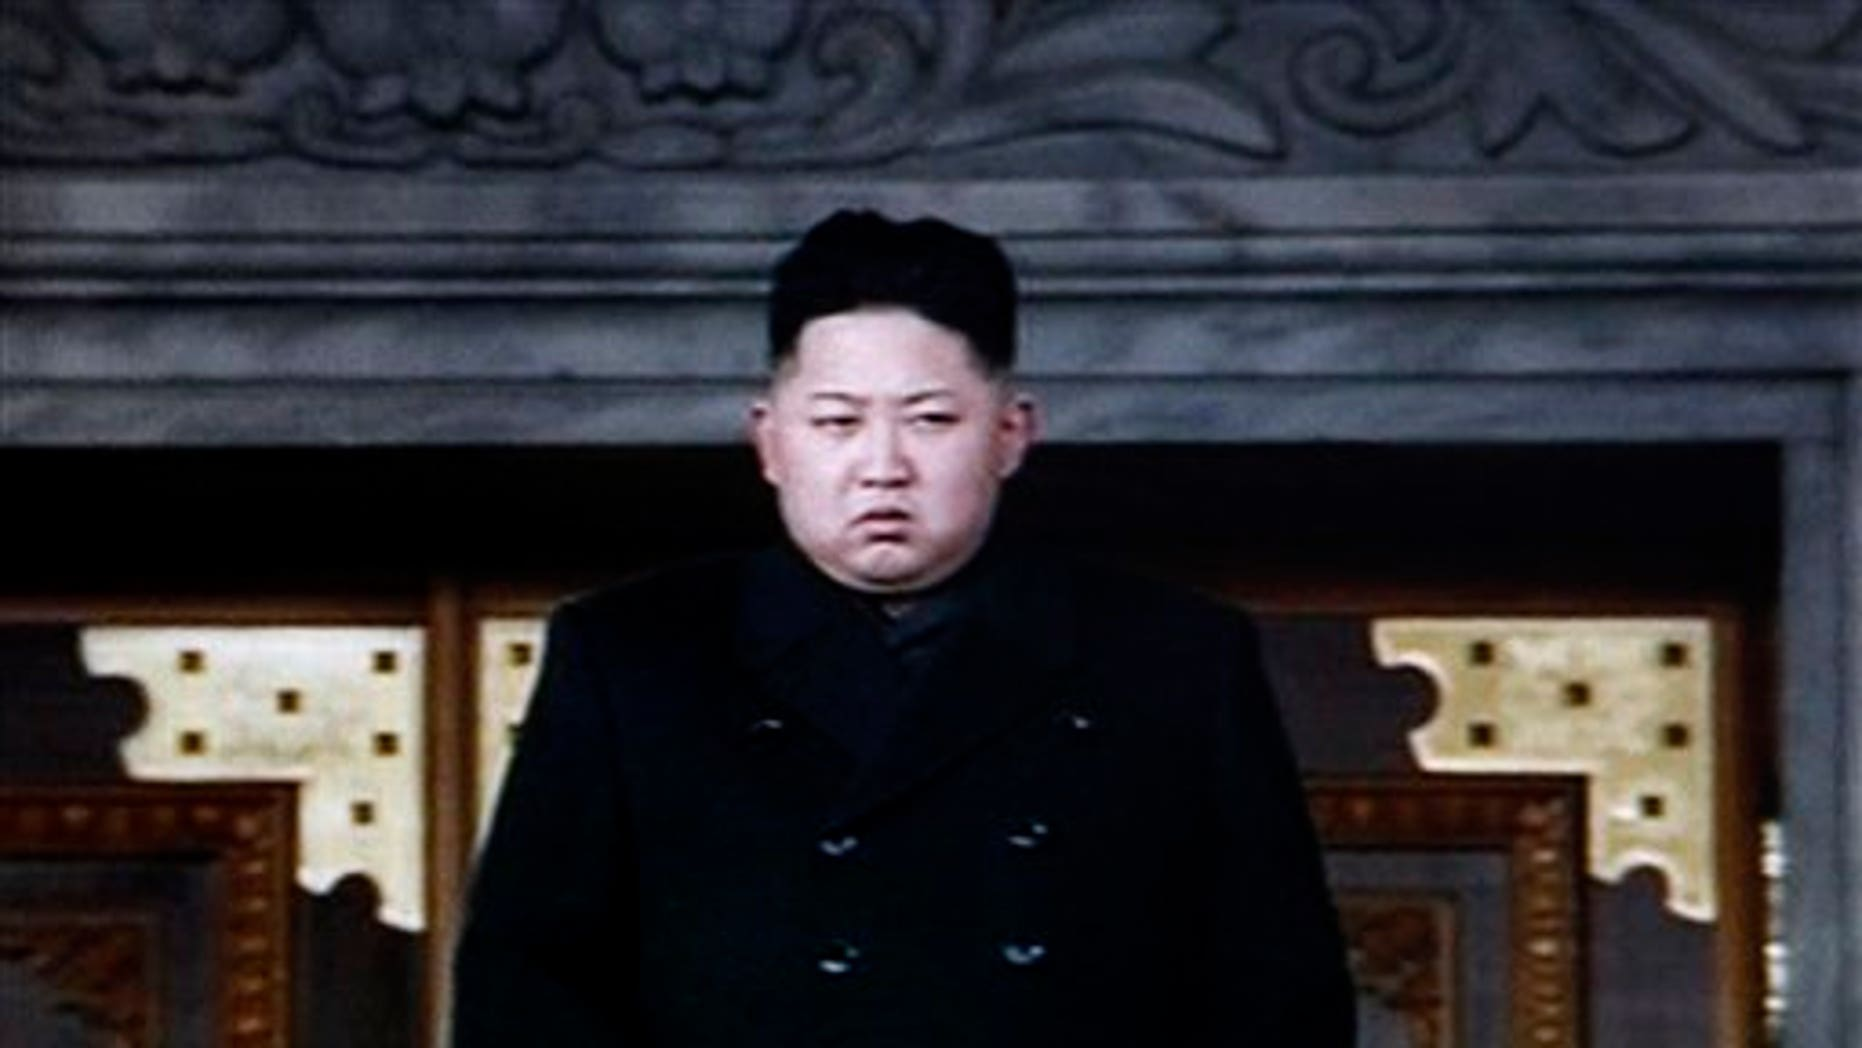 Dec. 29: In this image made from KRT video, North Korea's next leader Kim Jong Un is seen during a memorial service for late North Korean leader Kim Jong Il, in Pyongyang, North Korea.